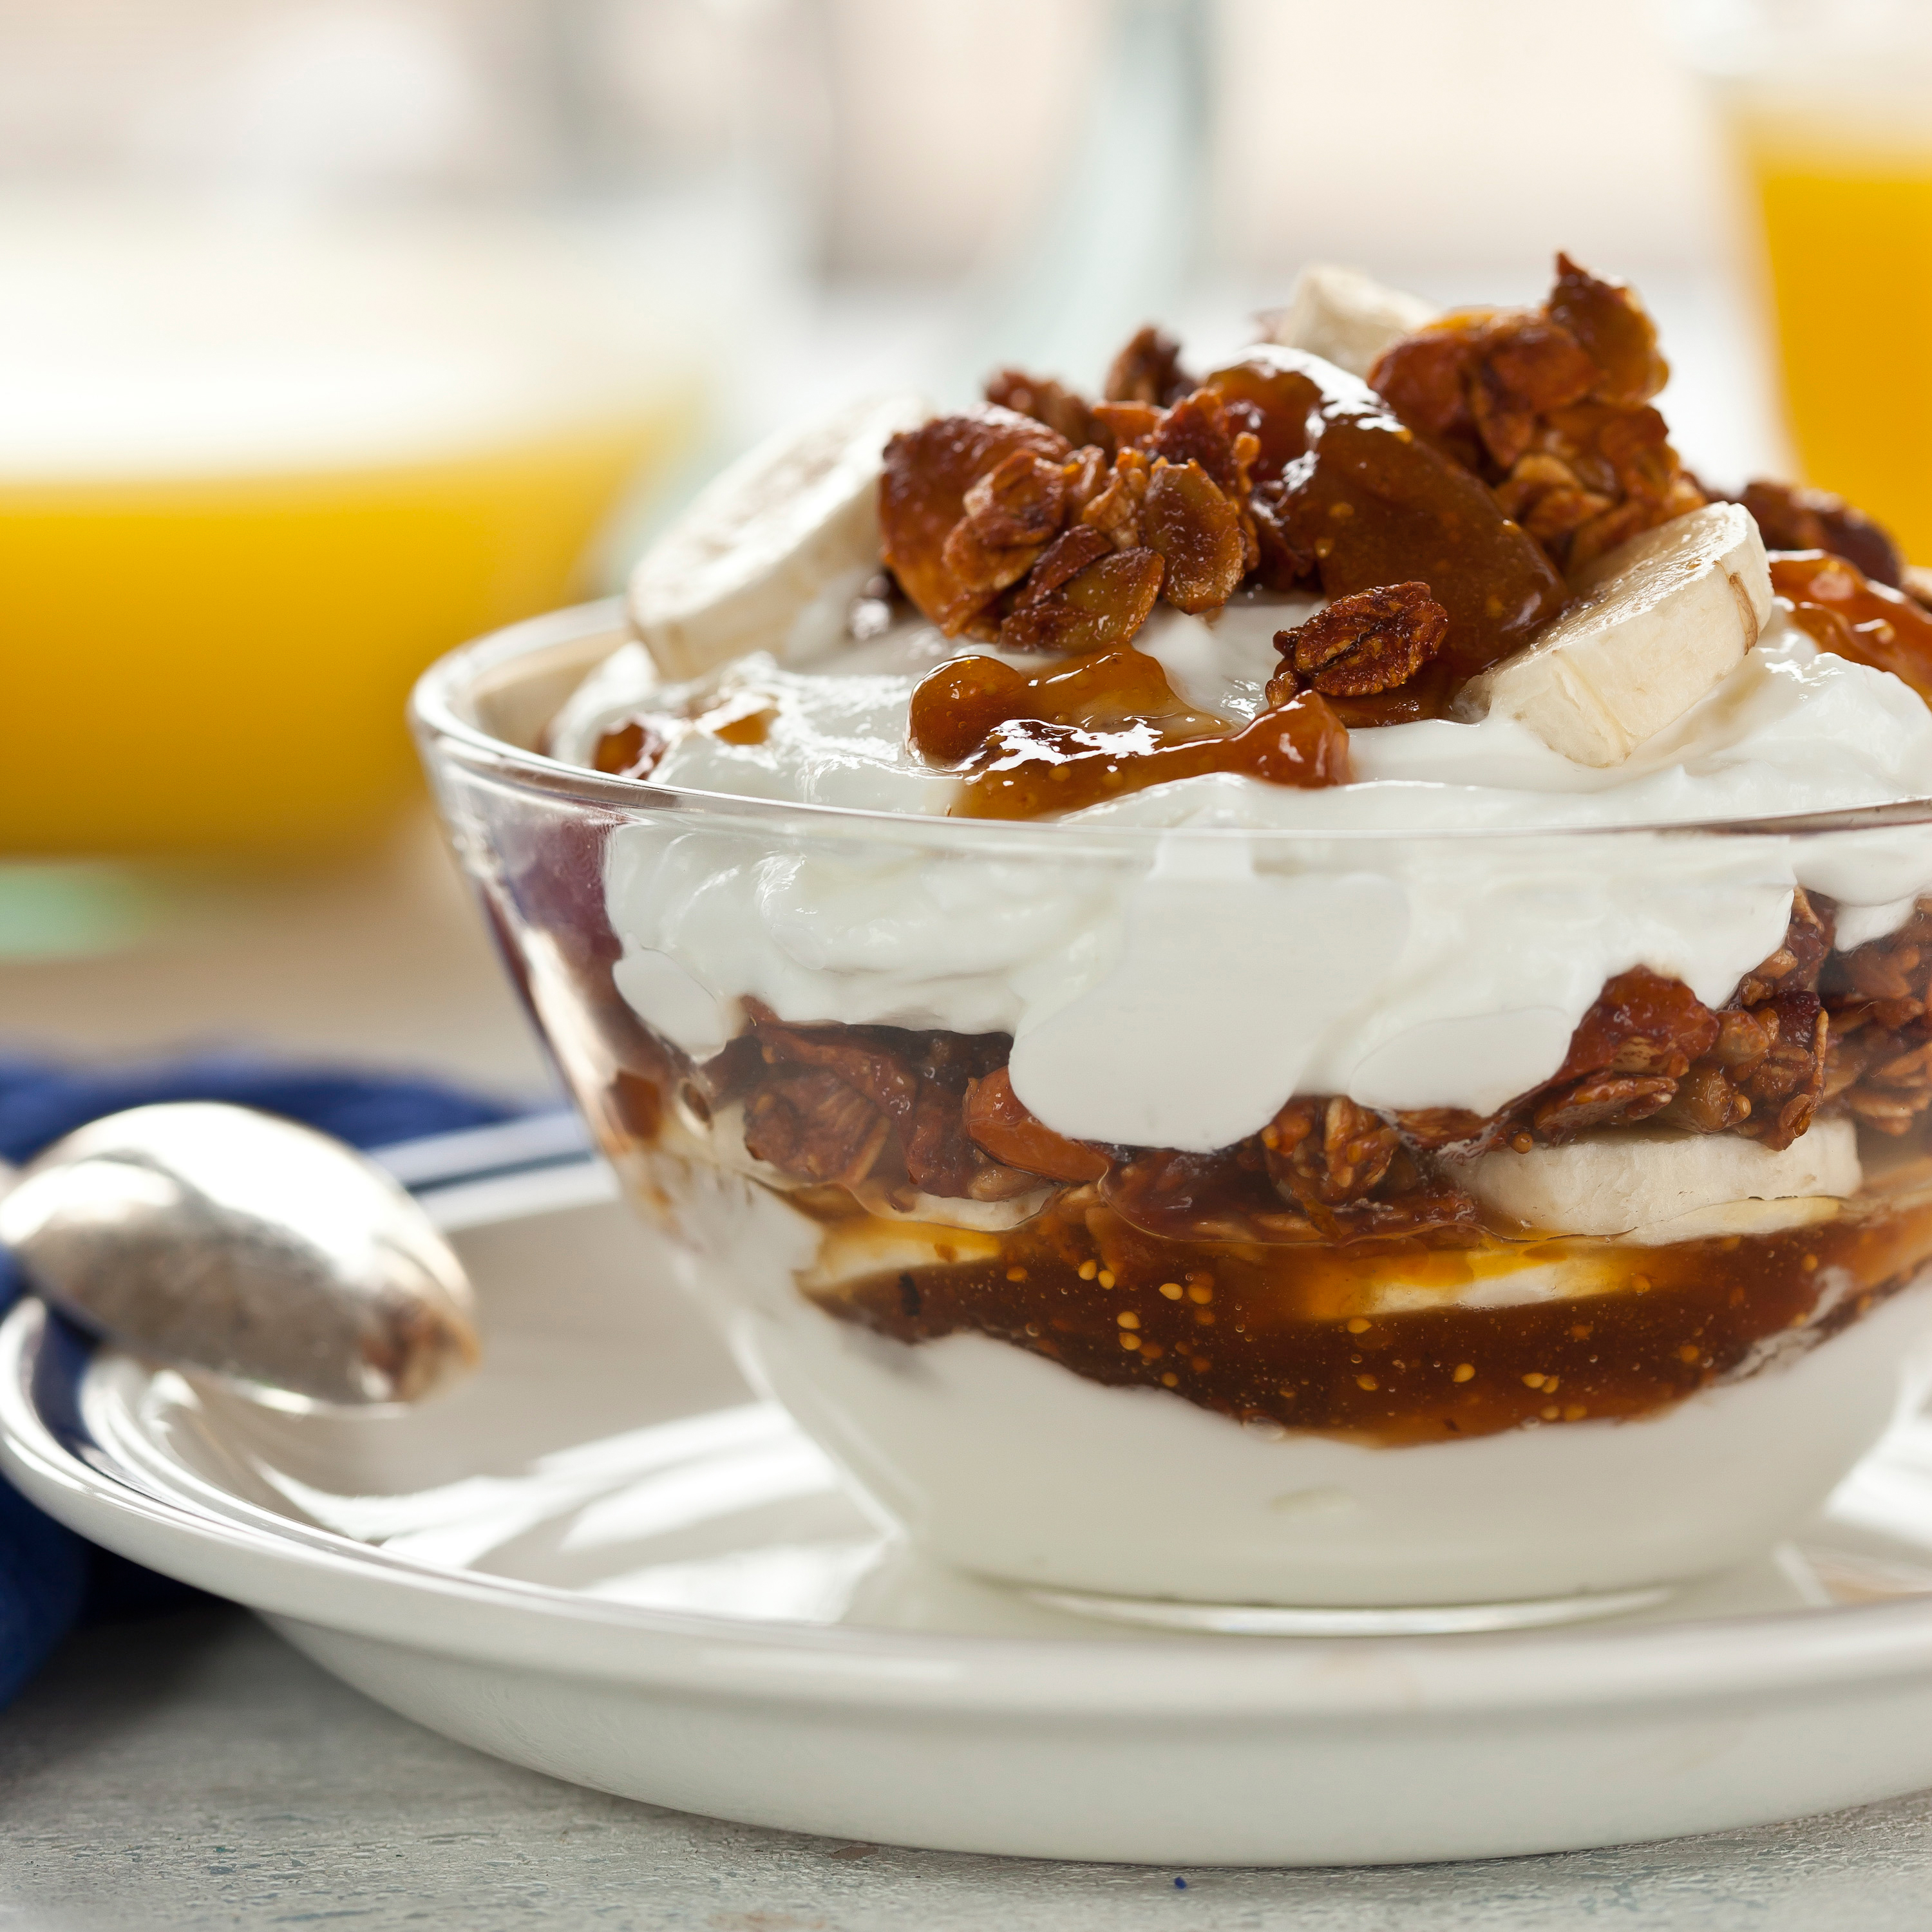 Yogurt, Fig Granola, & Banana Parfait